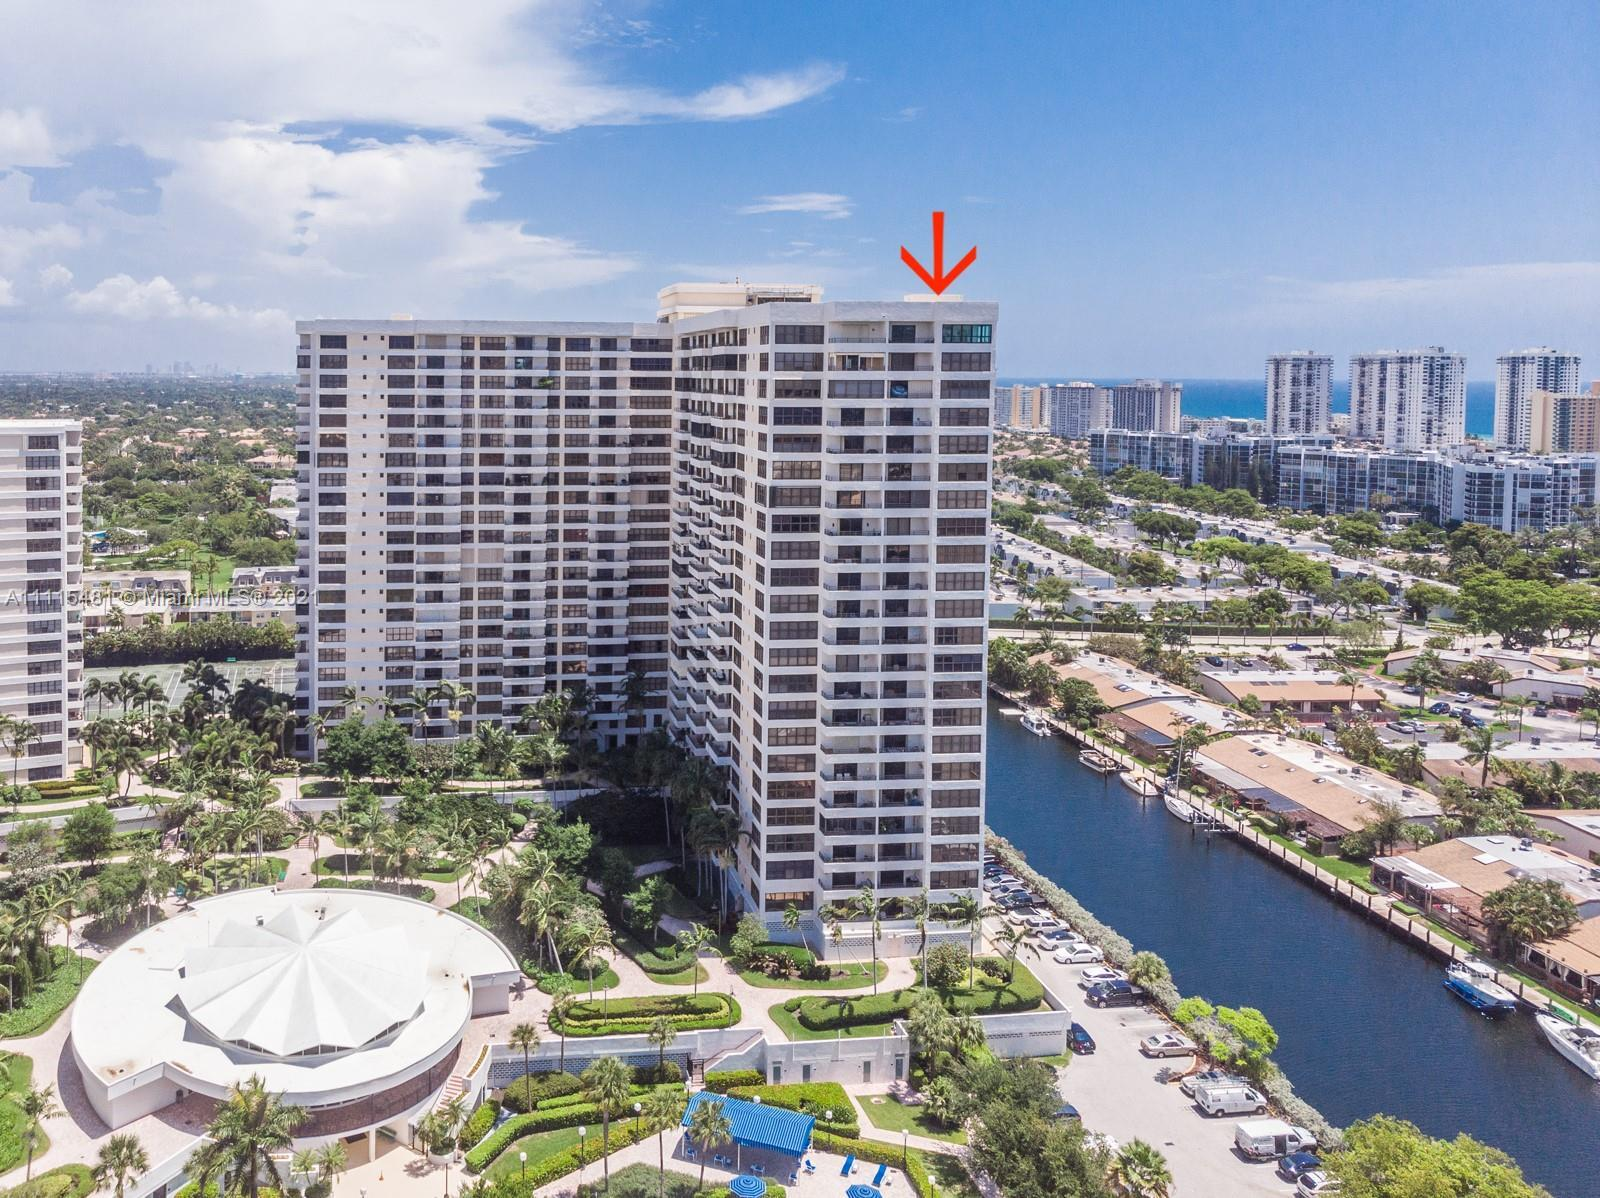 ONE OF A KIND PENTHOUSE! ALL NEW HURICANE IMPACT WINDOWS & DOORS.A/C SYSTEM IS BRAND NEW!. SOARING H